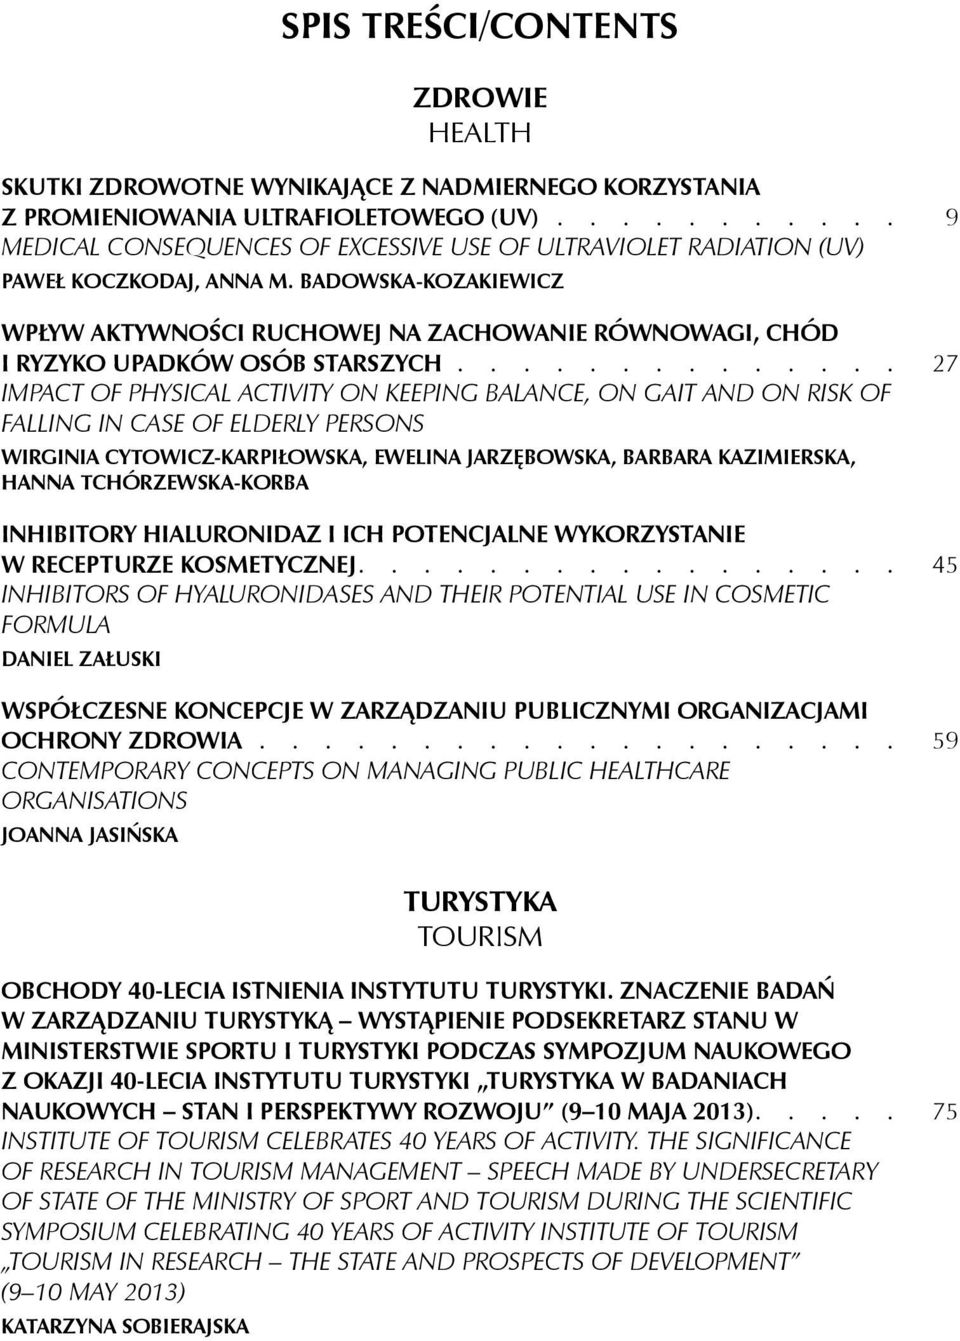 Badowska-Kozakiewicz WPŁYW AKTYWNOŚCI RUCHOWEJ NA ZACHOWANIE RÓWNOWAGI, CHÓD I RYZYKO UPADKÓW OSÓB STARSZYCH 27 IMPACT OF PHYSICAL ACTIVITY ON KEEPING BALANCE, ON GAIT AND ON RISK OF FALLING IN CASE